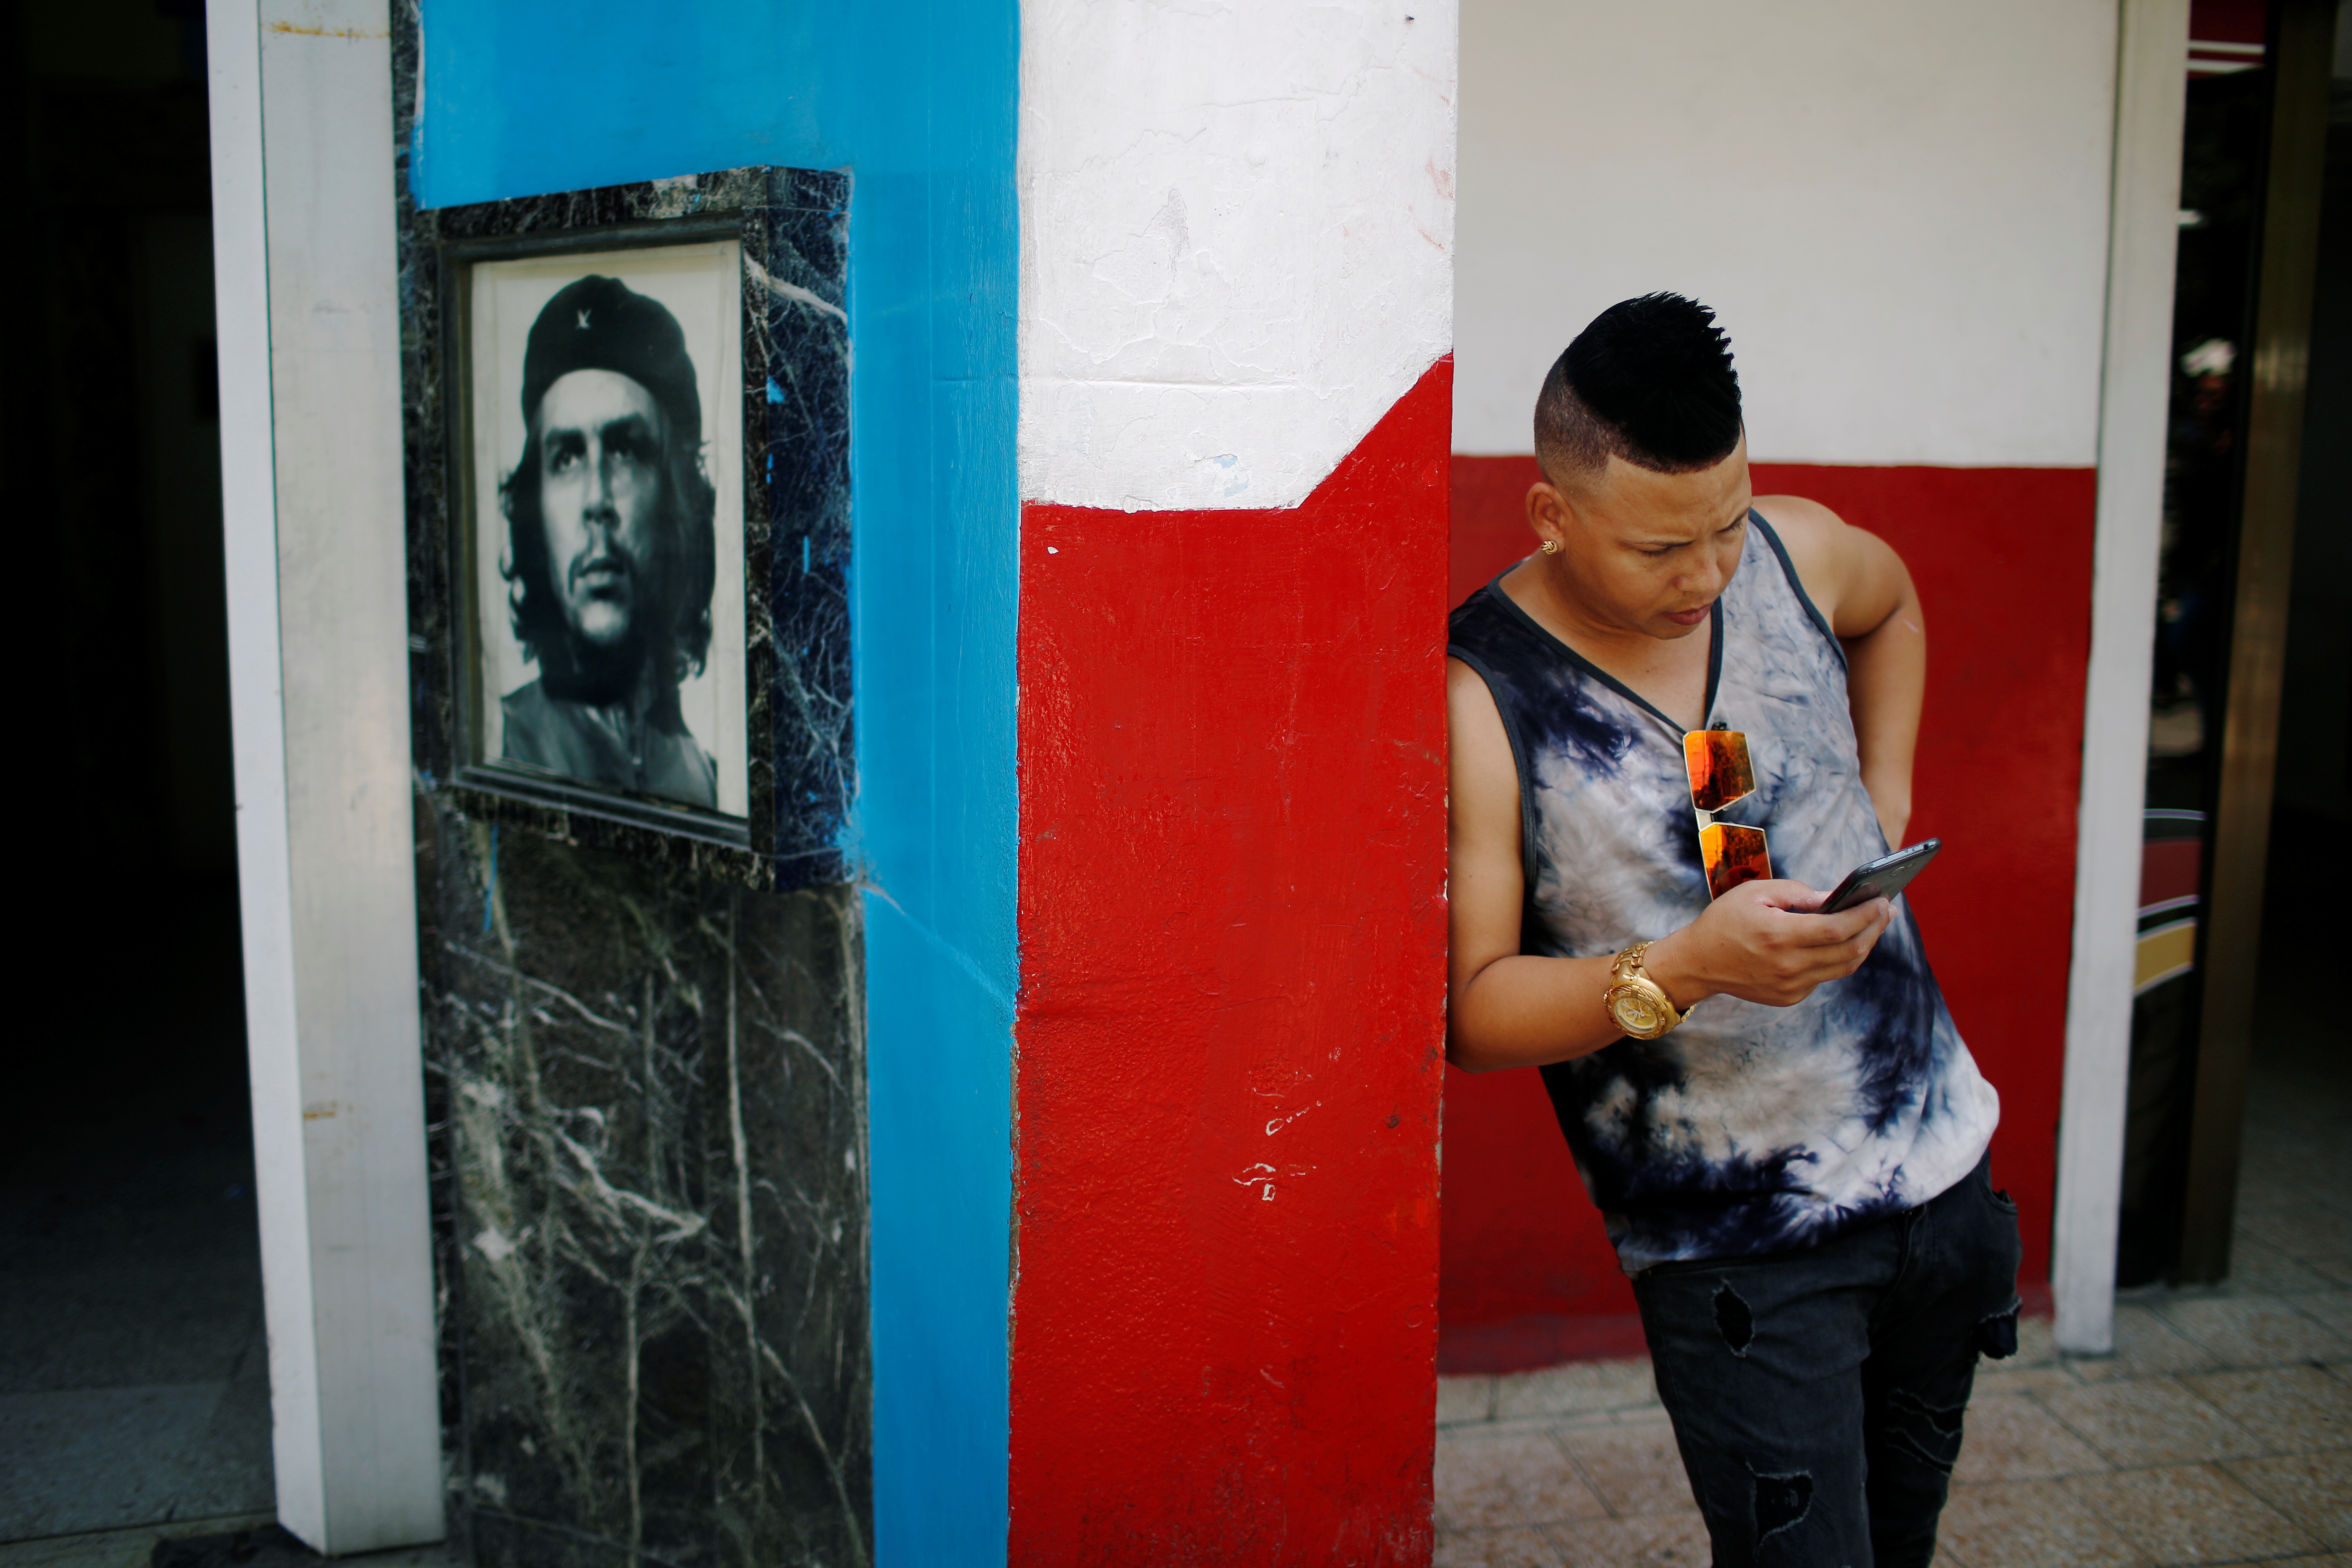 """A young Cuban checks his phone at an internet hotspot next to a picture of late revolutionary hero Ernesto """"Che"""" Guevara in Havana, Cuba August 10, 2018. Picture taken August 10, 2018. REUTERS/Tomas Bravo"""